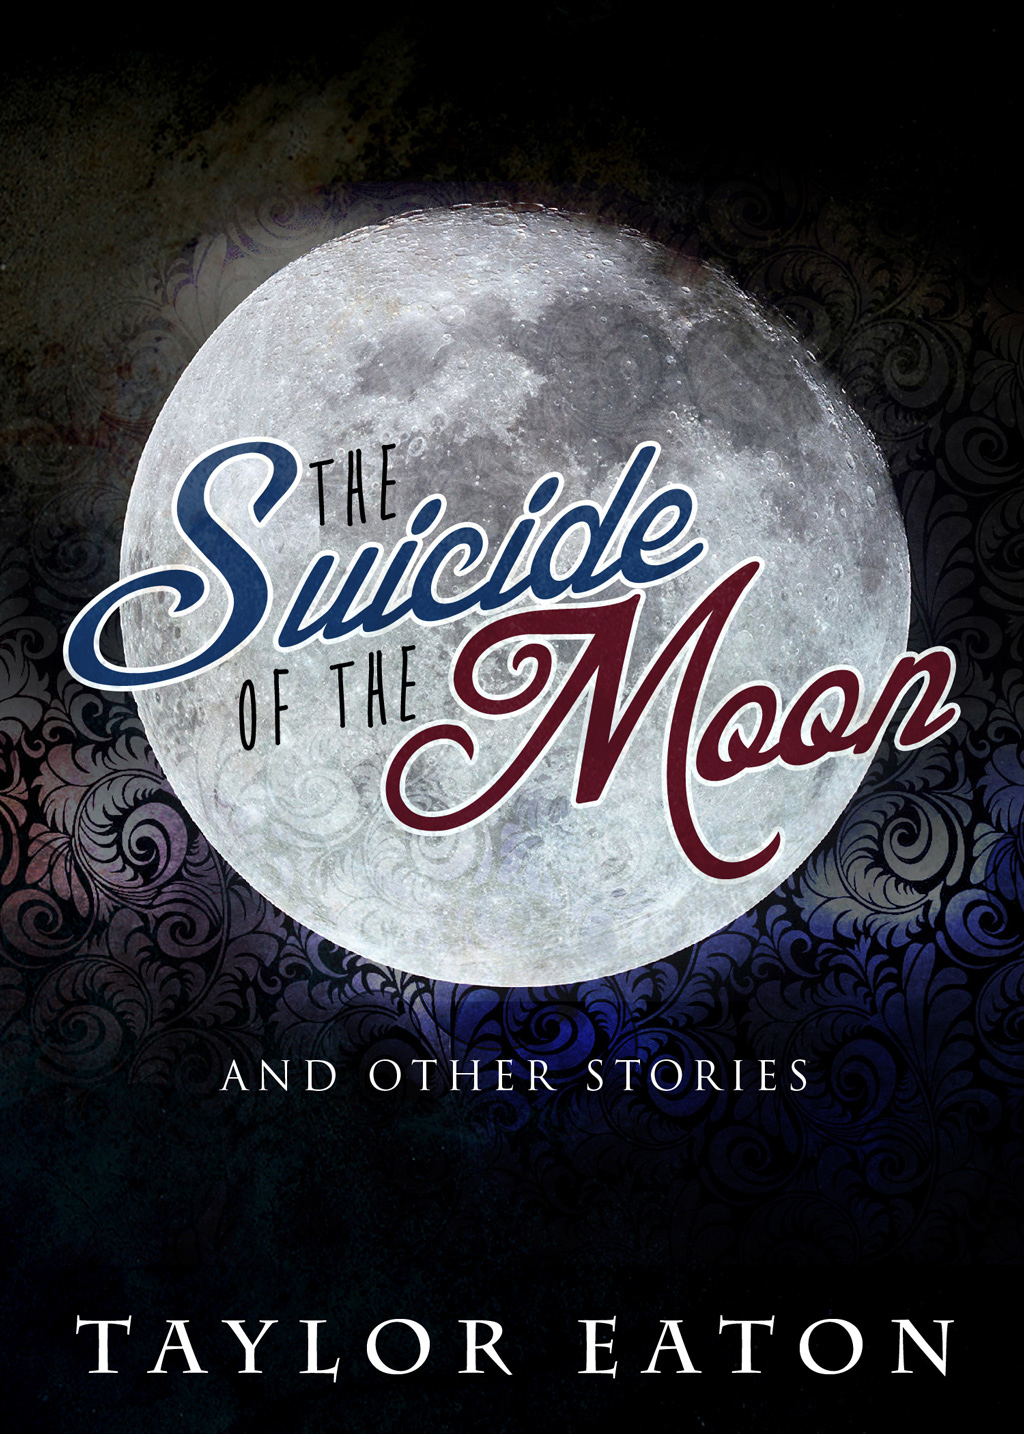 The Suicide of the Moon: And Other Stories